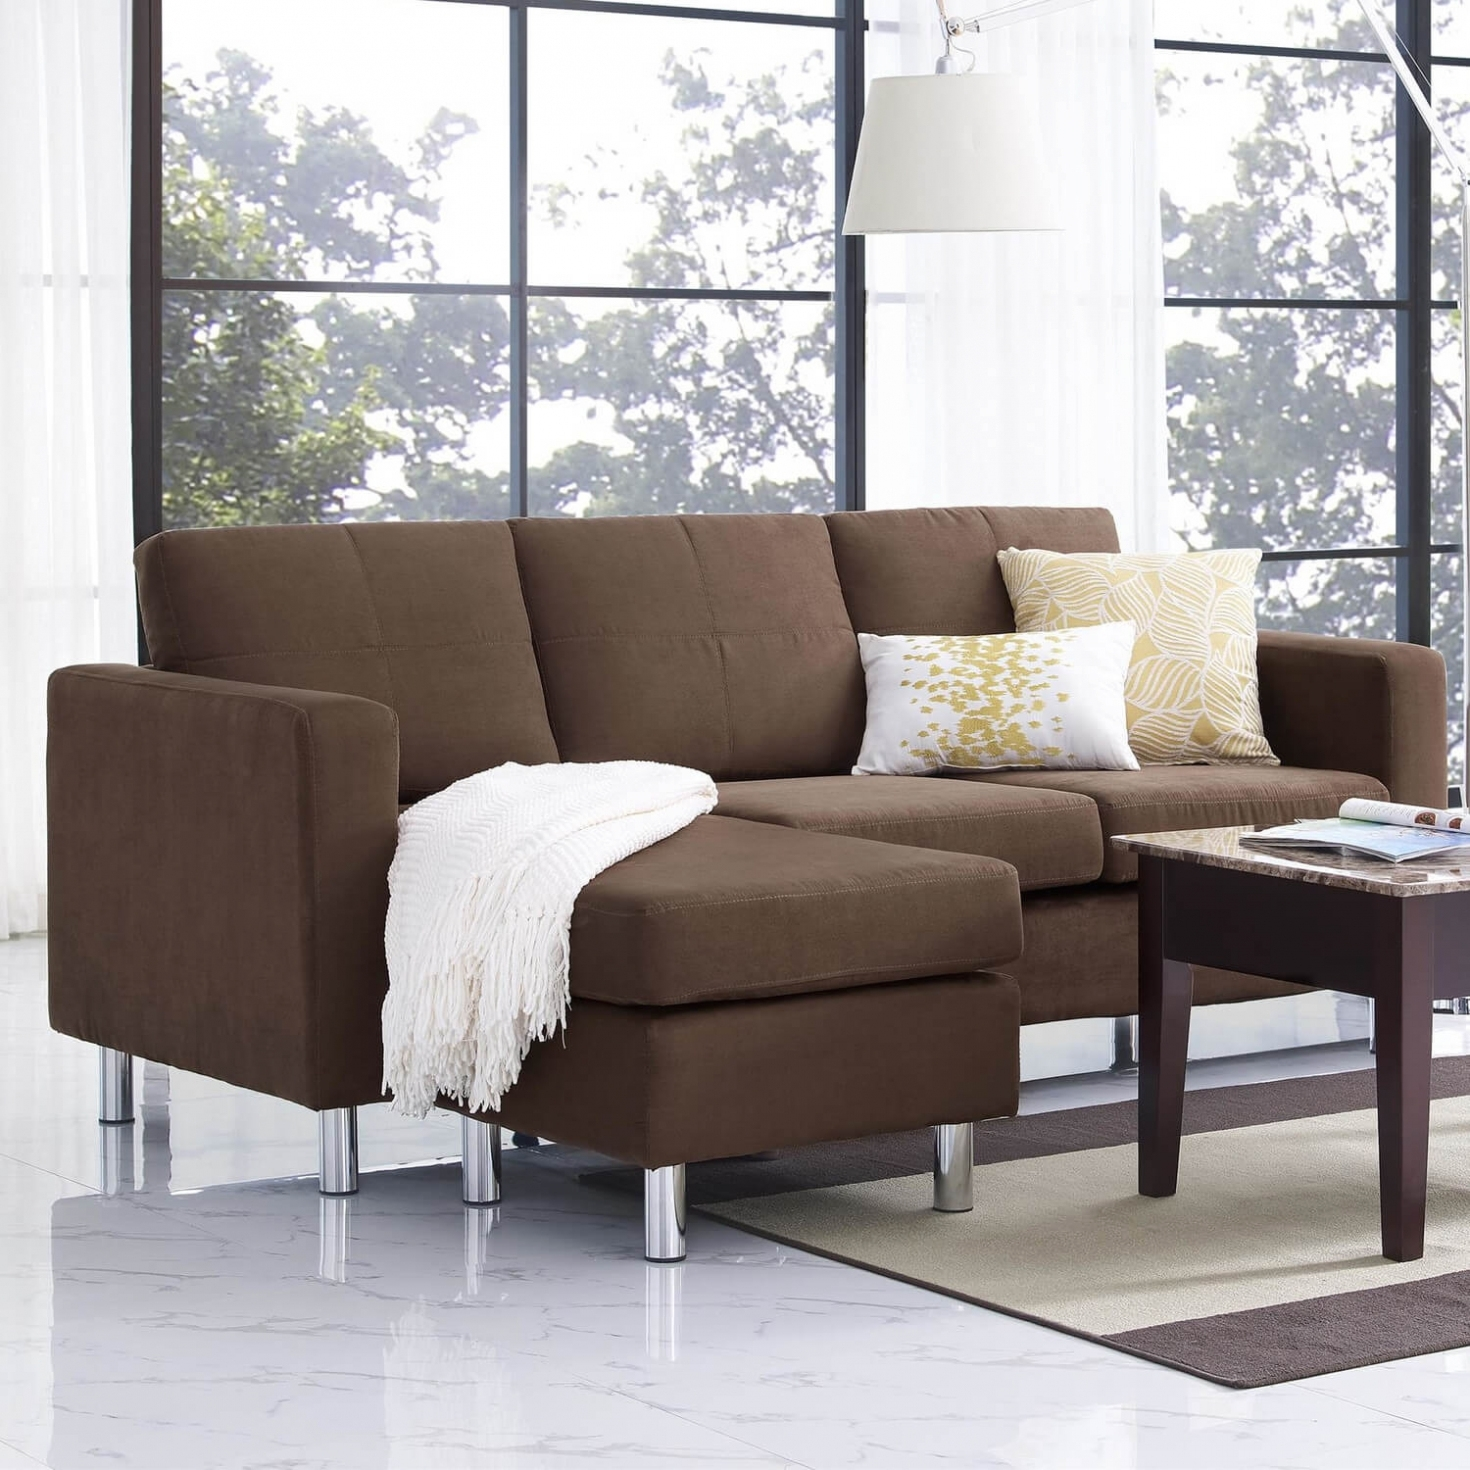 10 Collection Of Sectional Sofas Under 400 Sofa Ideas